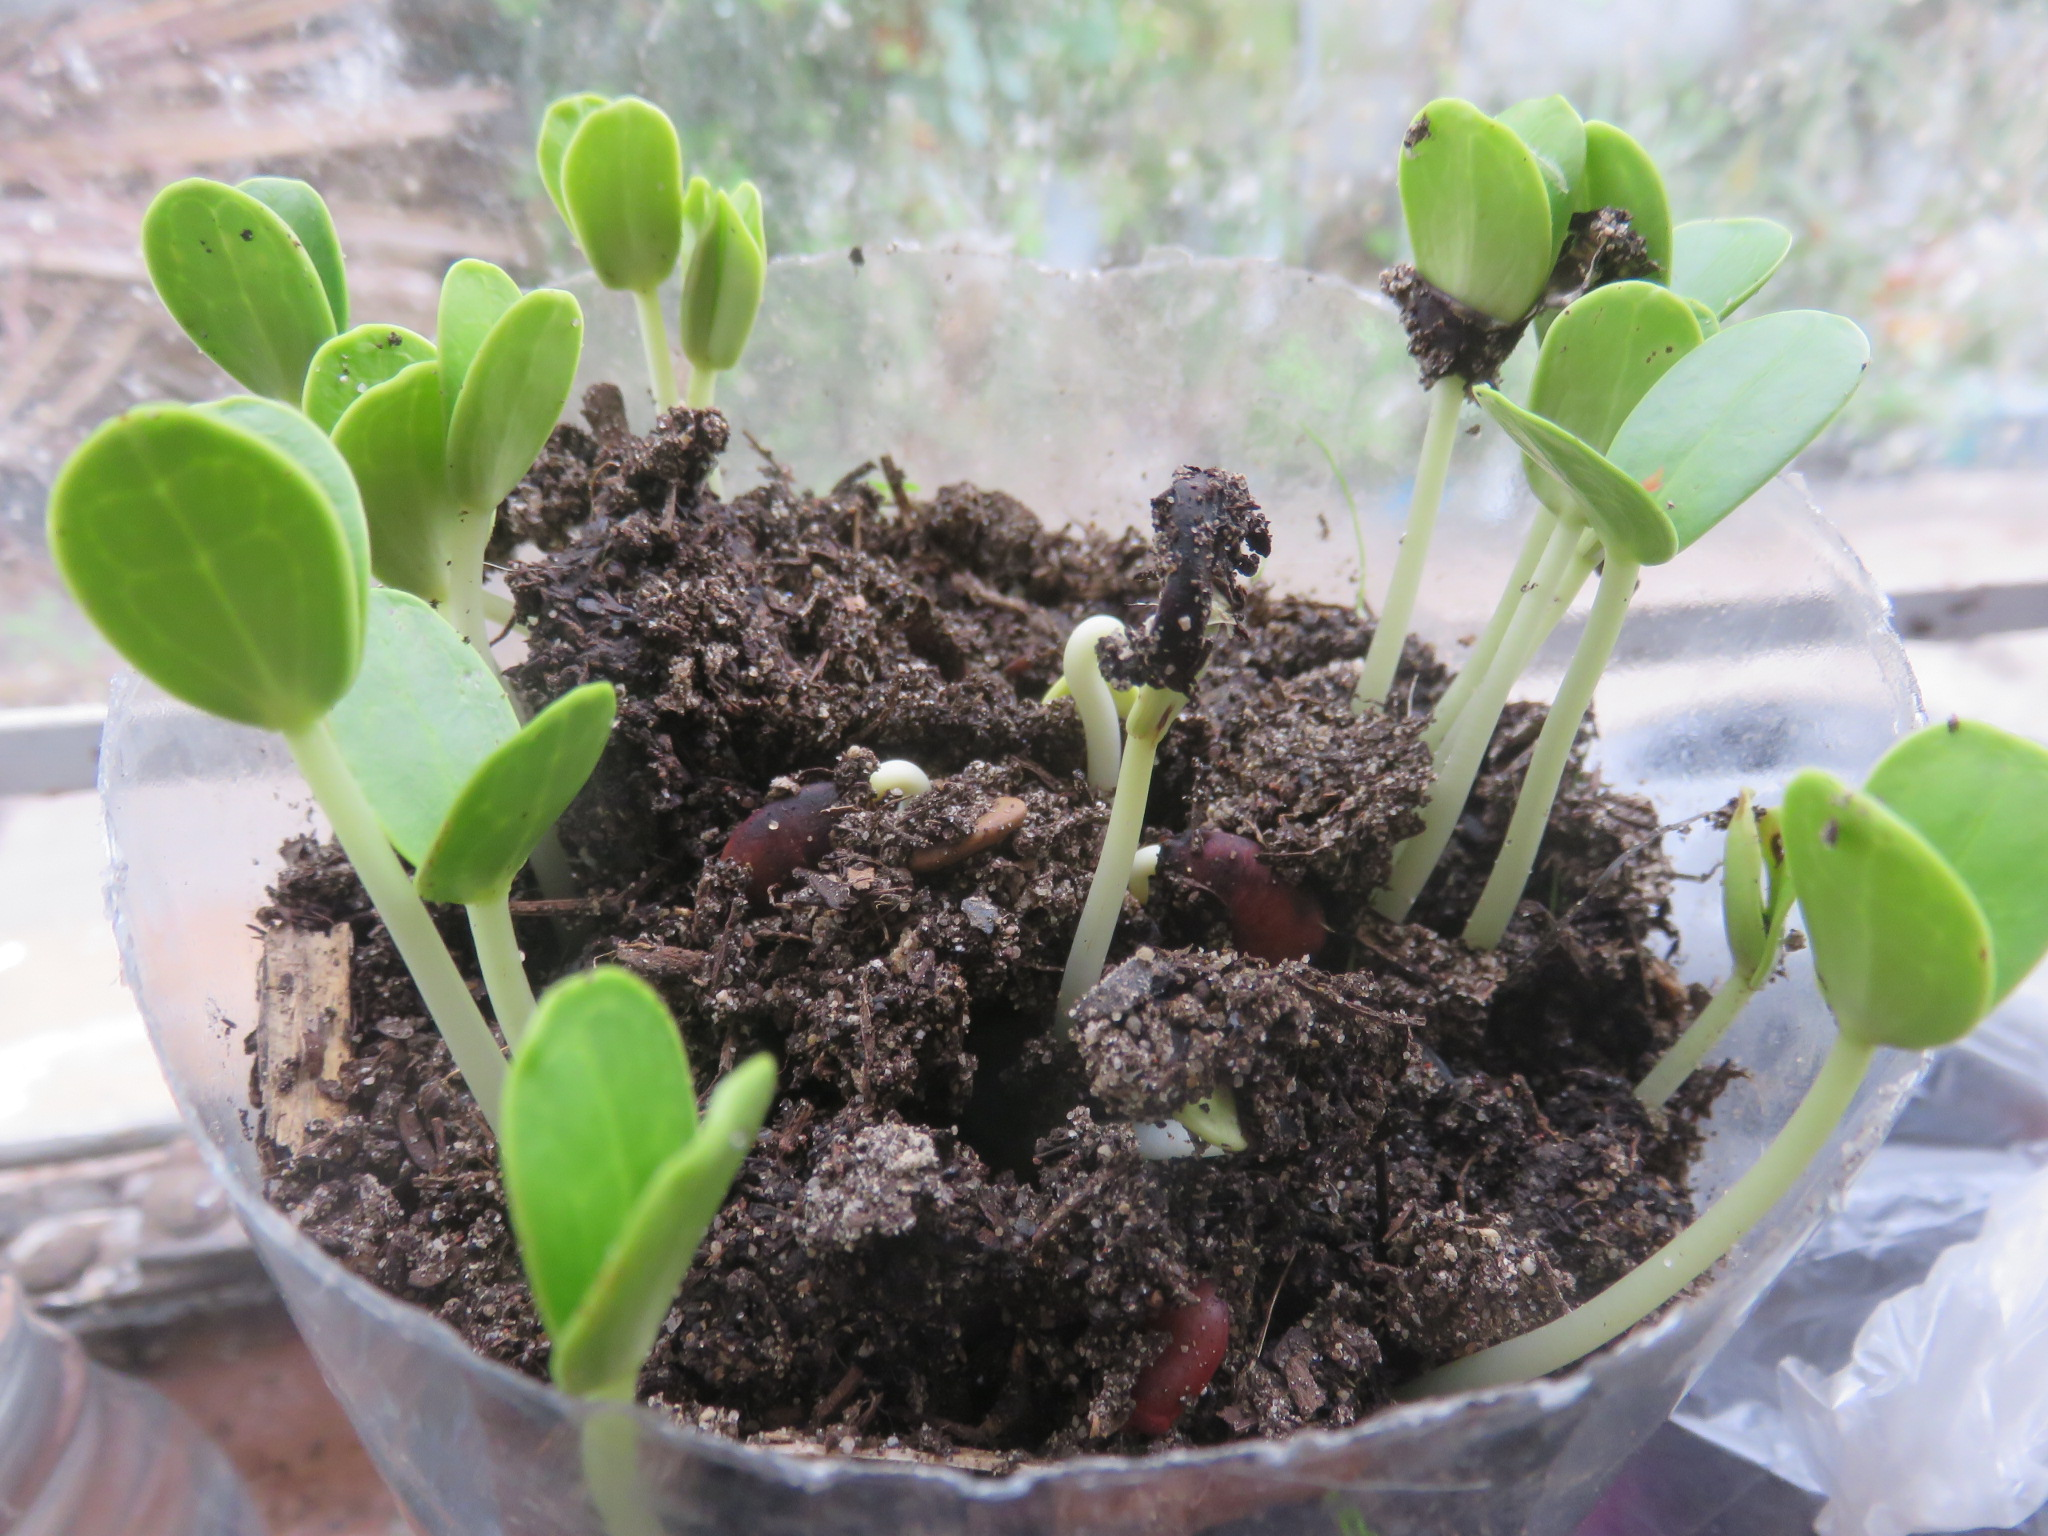 Carob seed can take just 2 weeks to germinate